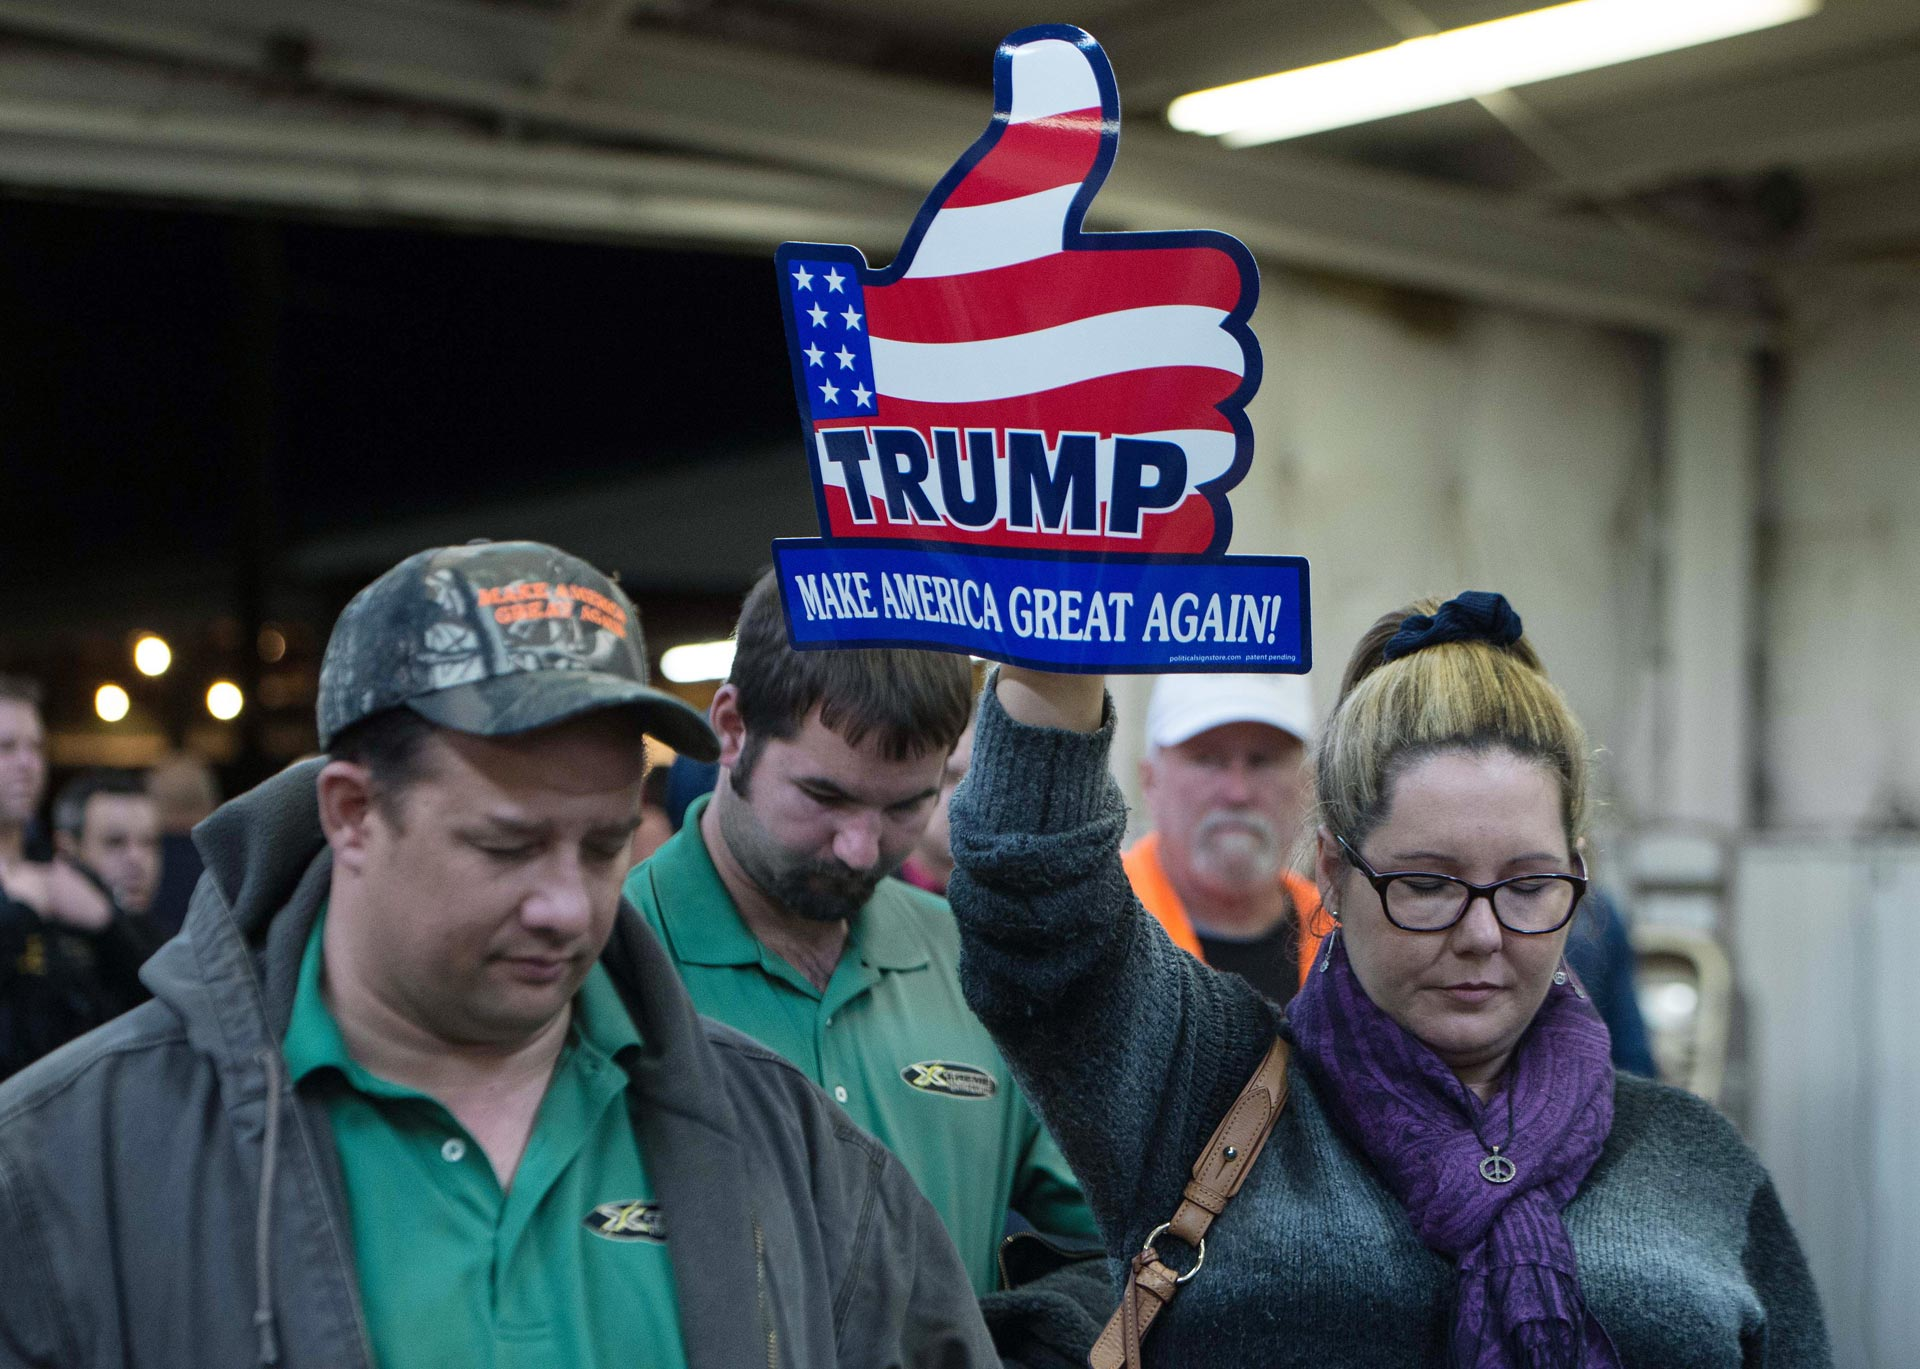 Attendees at a Donald Trump rally in Manassas, Va. take part in a prayer and moment of silence after the San Bernardino shootings on Dec. 2, 2015.